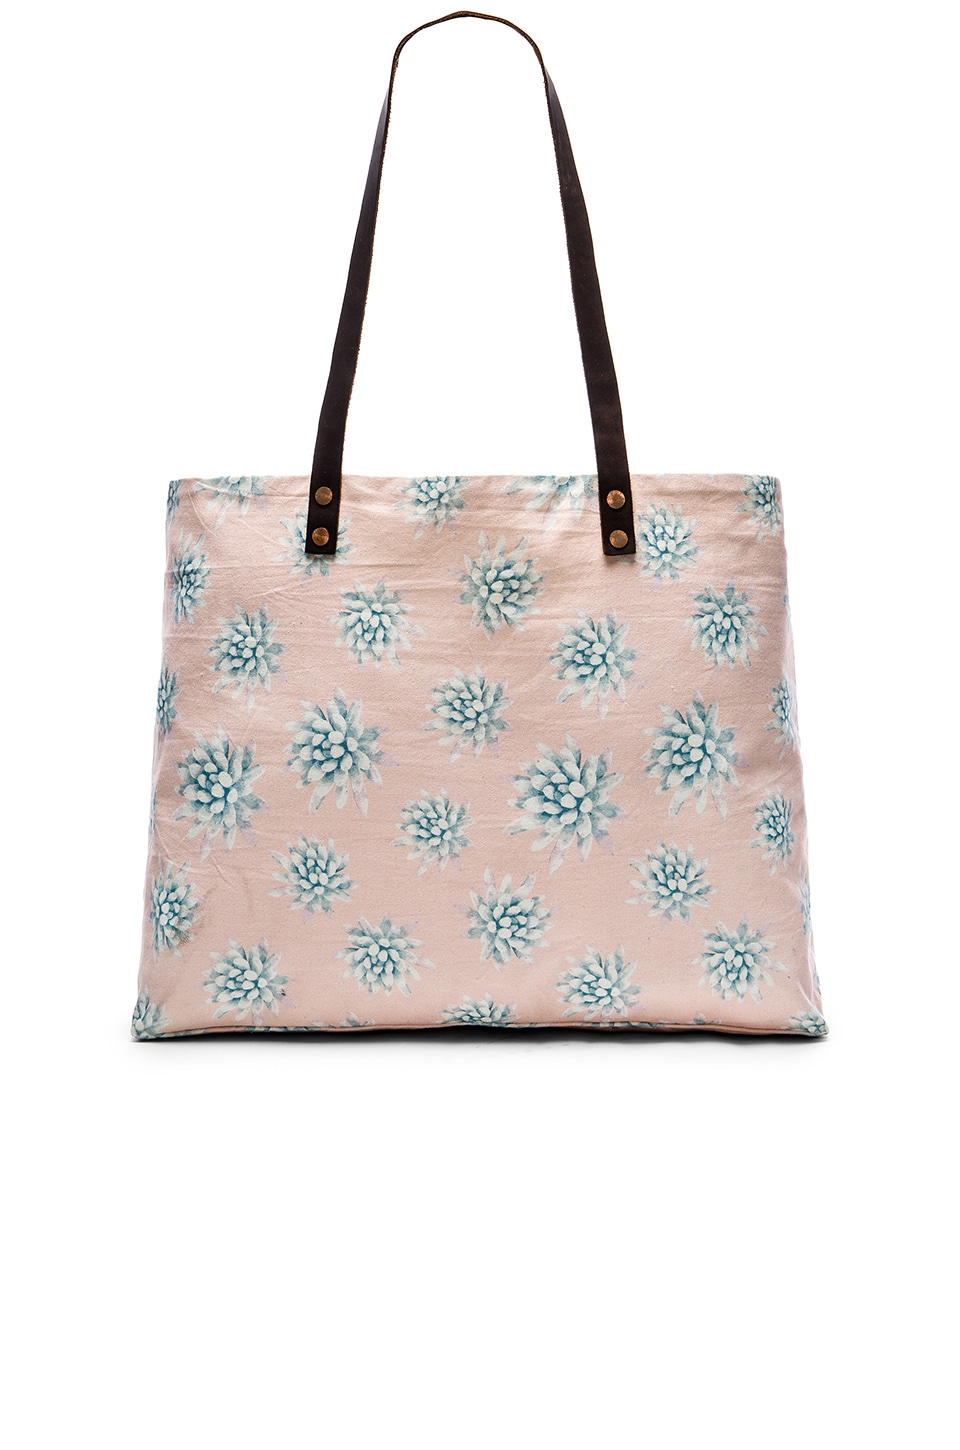 Tori Praver Swimwear Beach Bag in Wild Agave Ginger